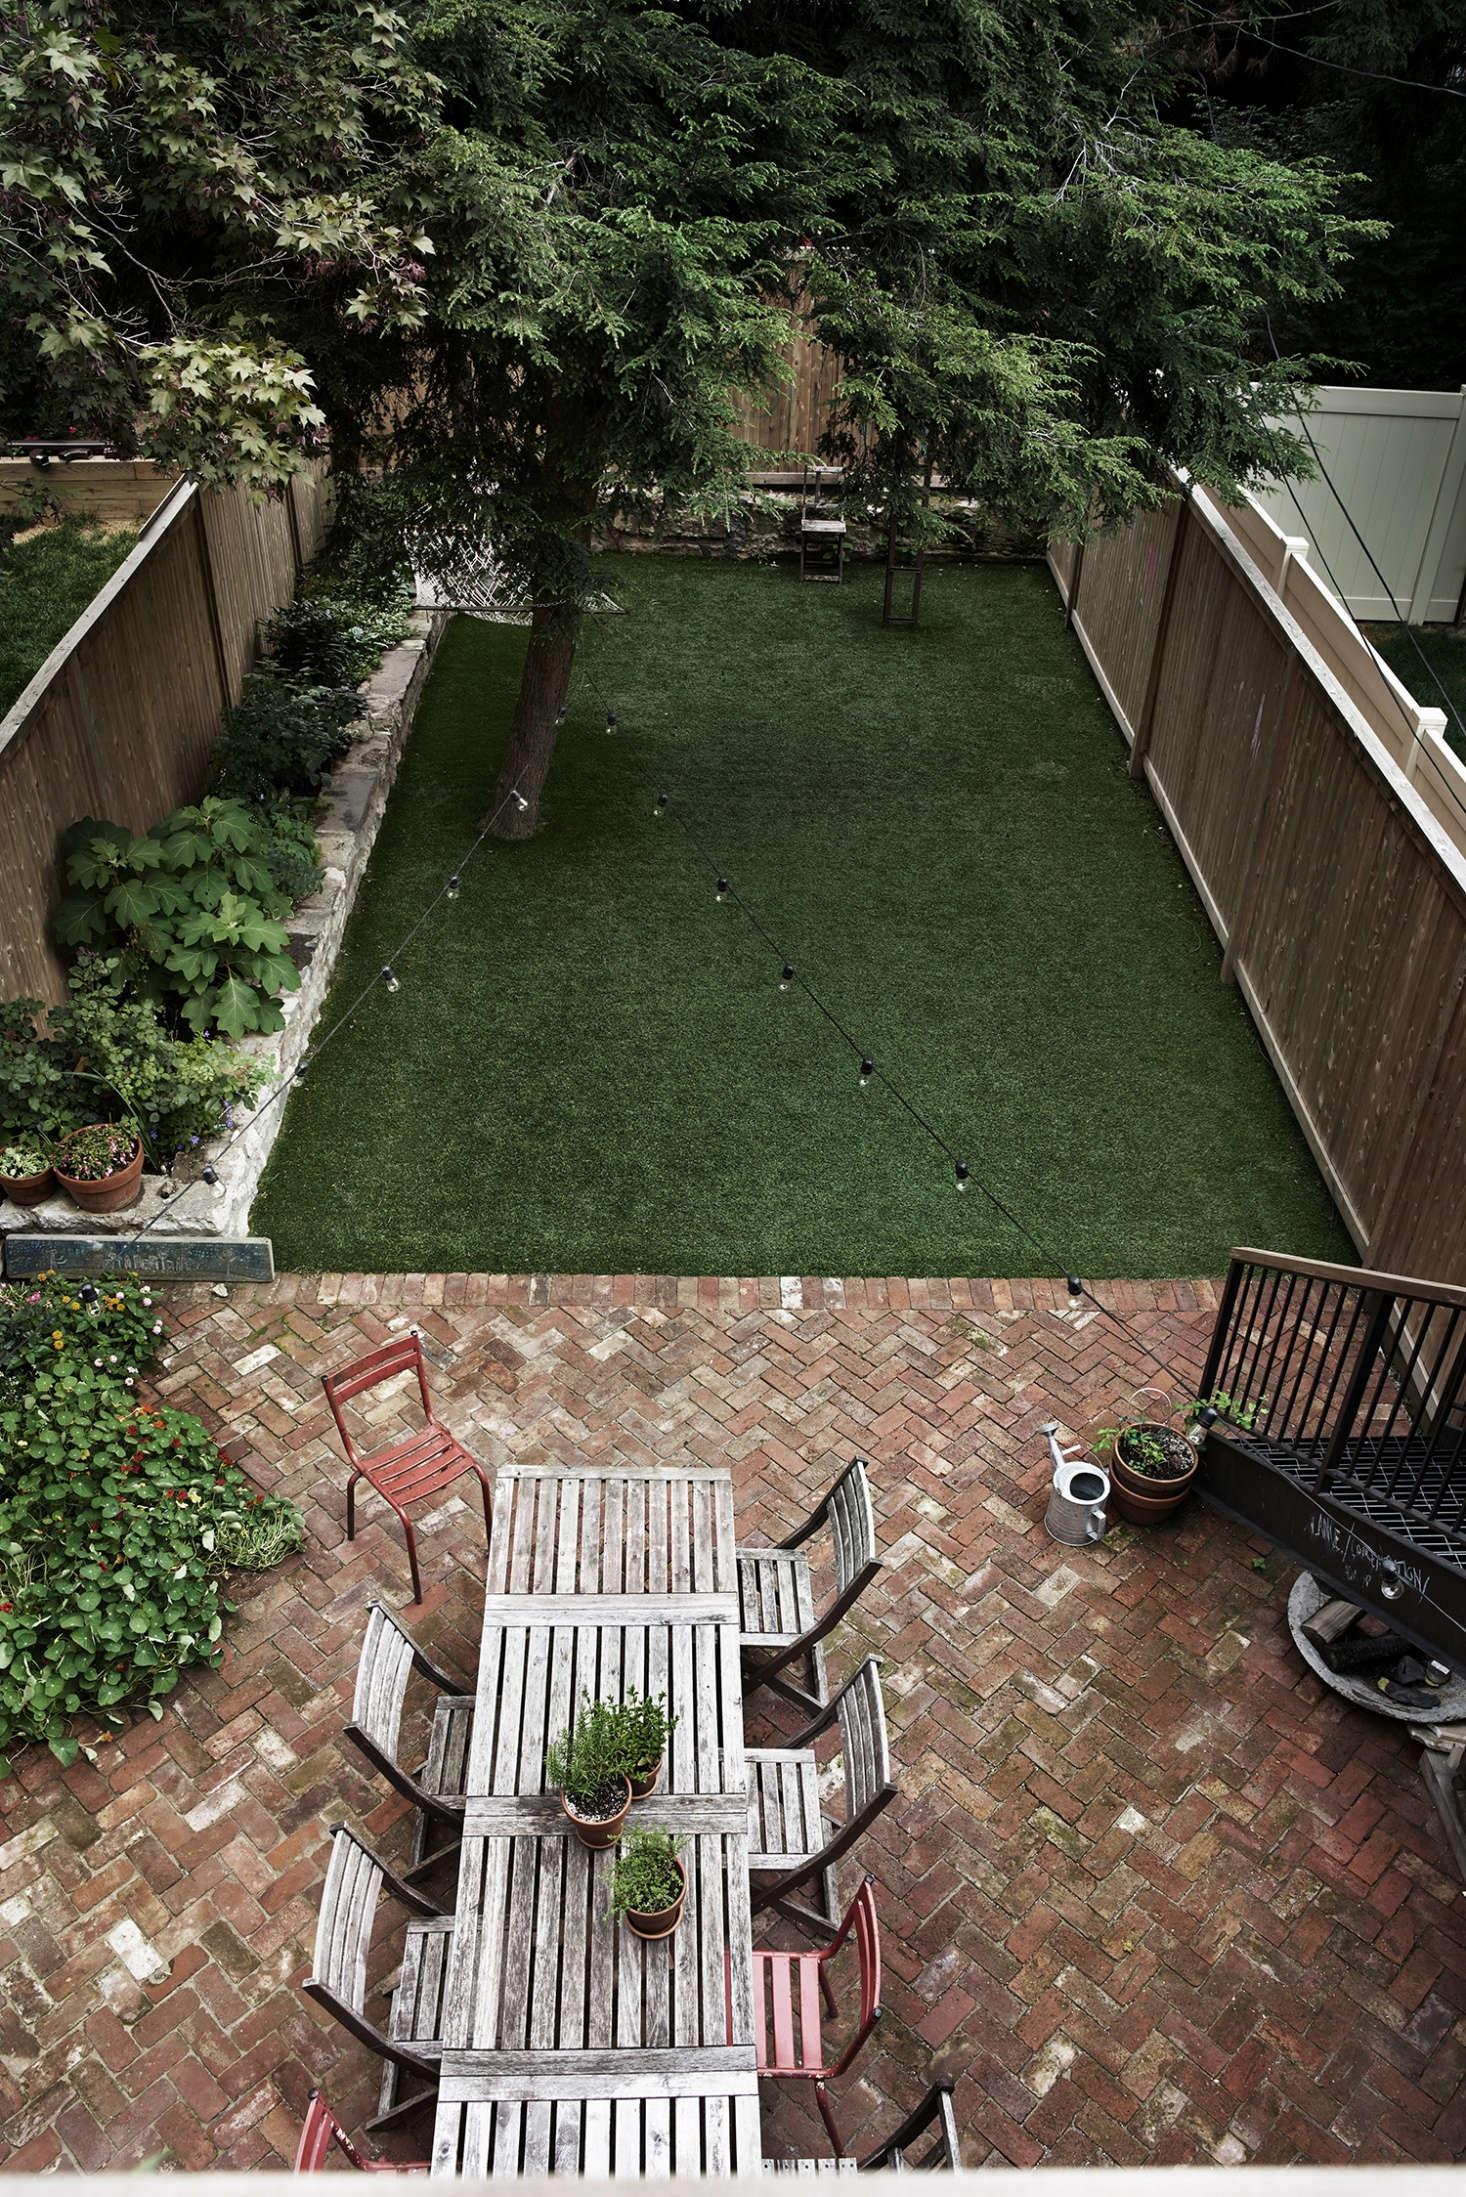 Buy Fake Grass Pros And Cons Artificial Grass Versus A Live Lawn Gardenista